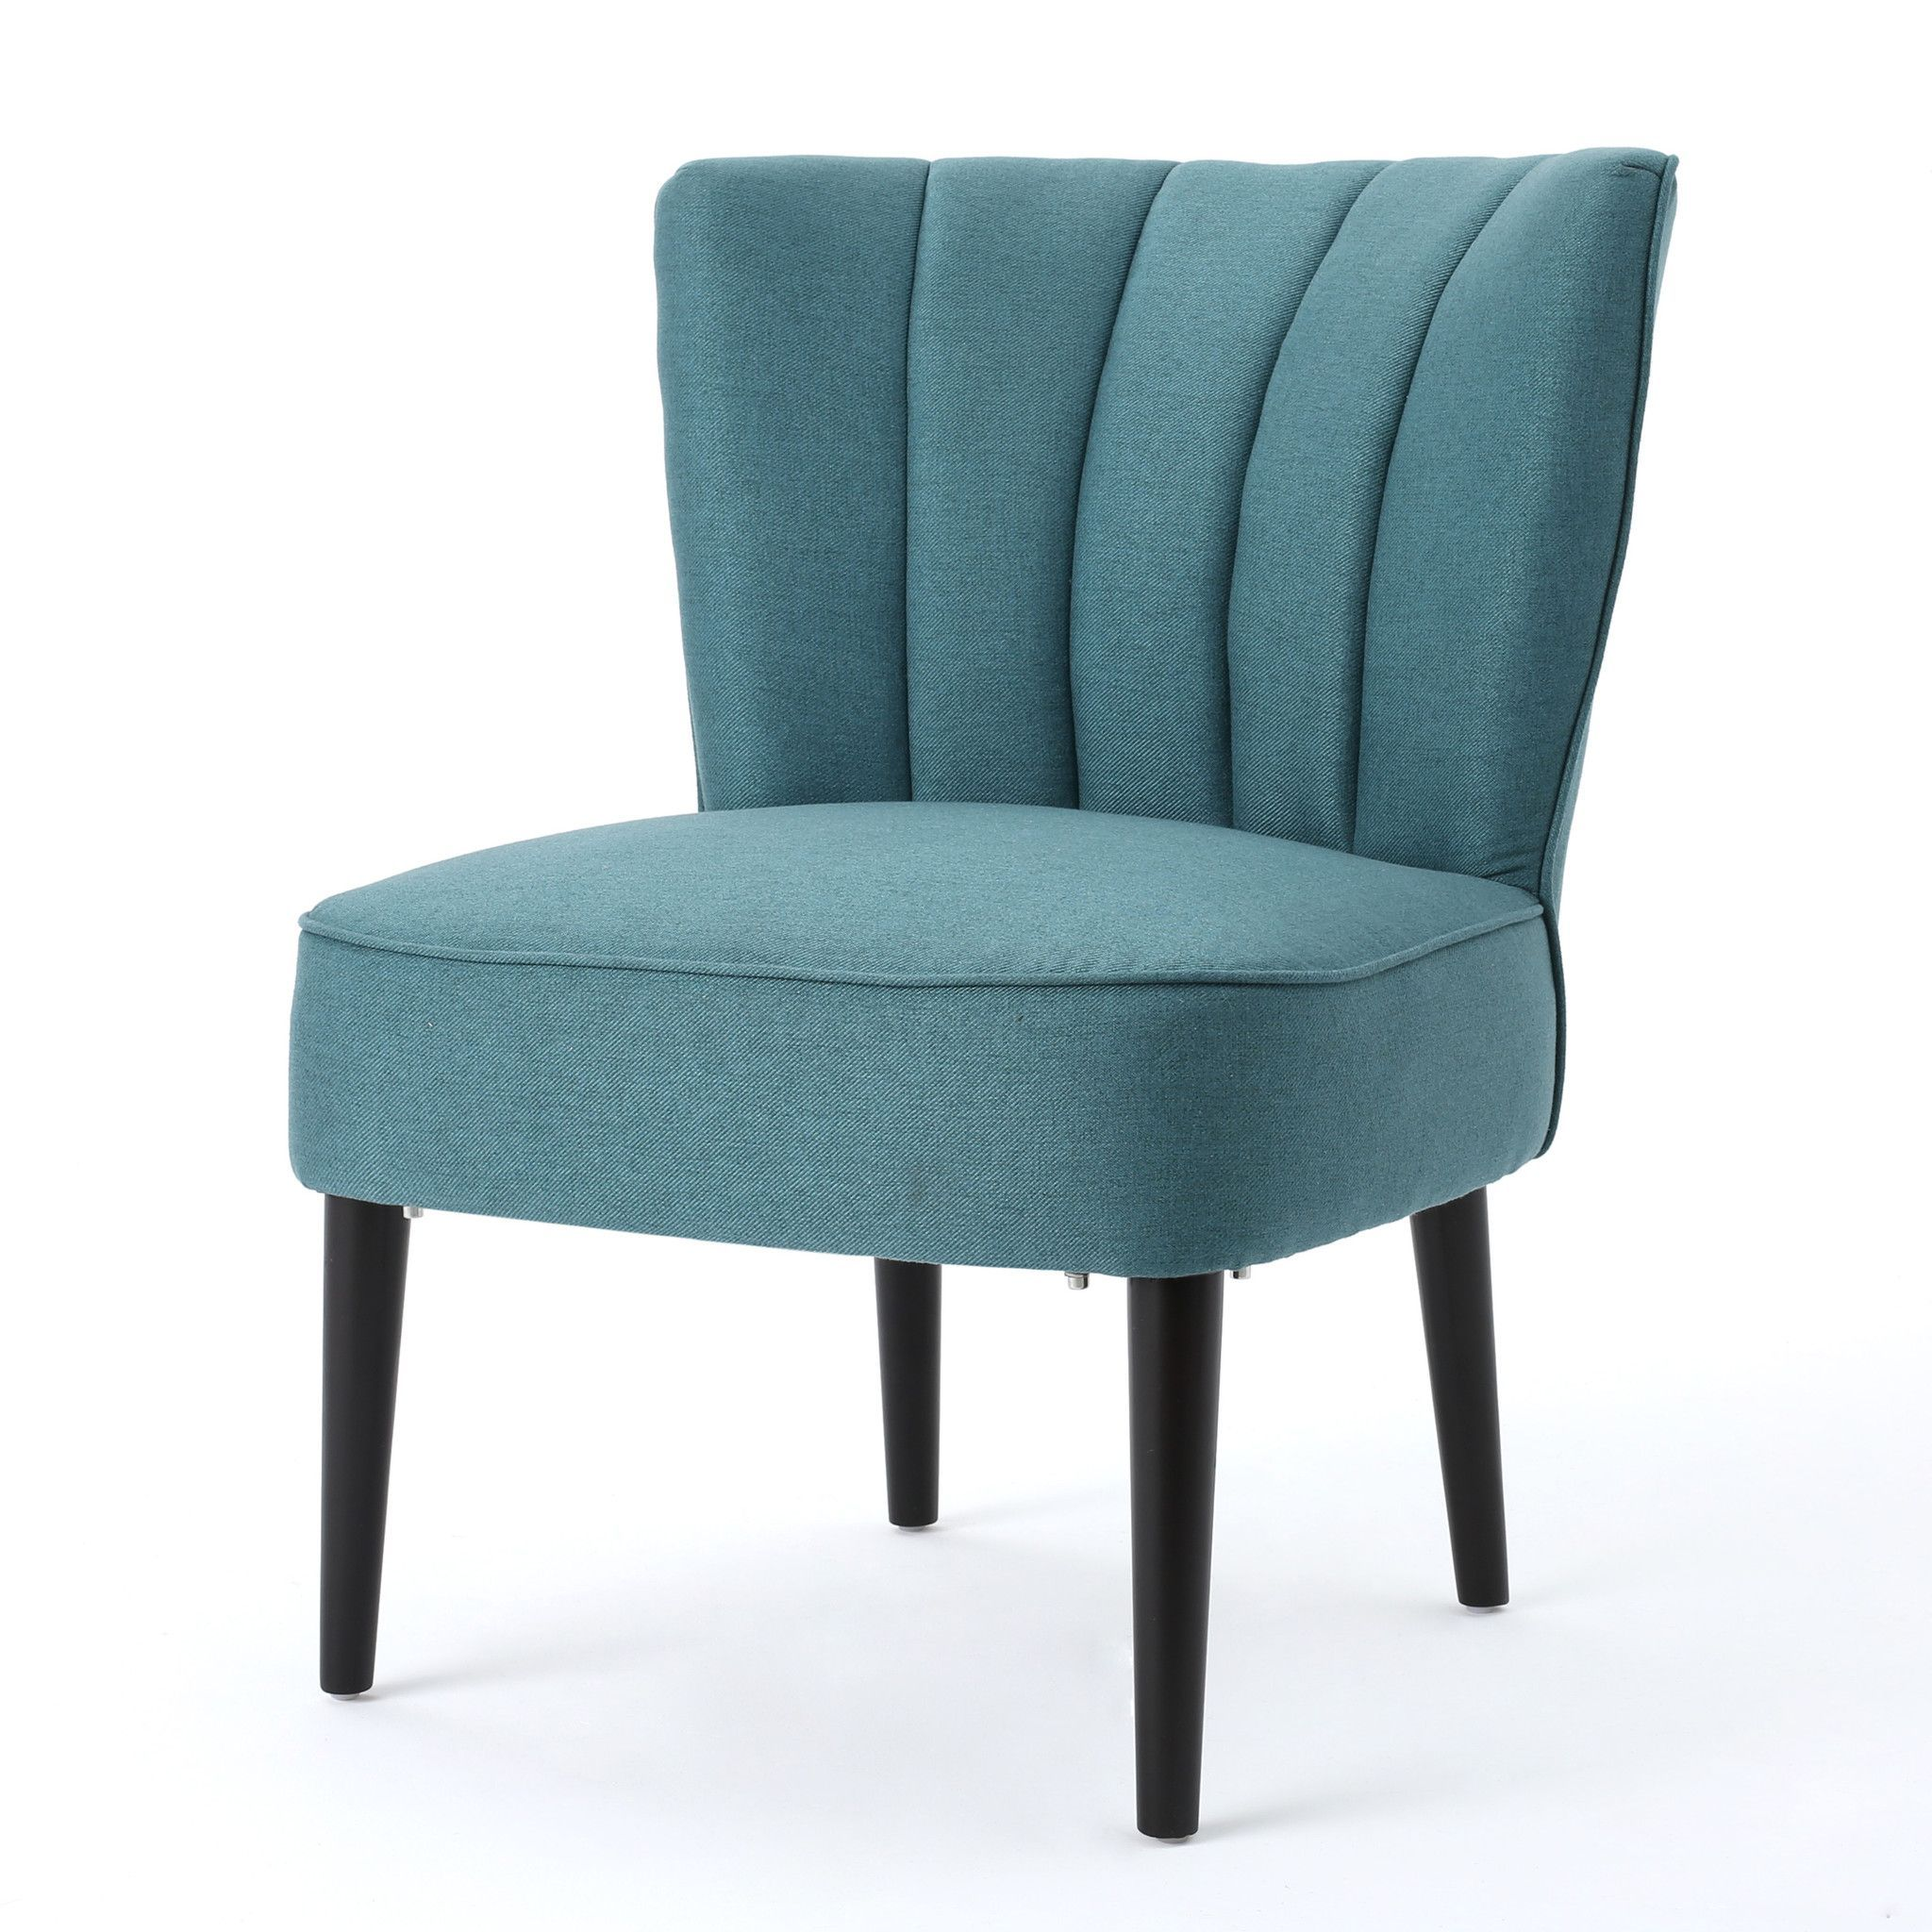 Leafdale Plush Fabric Accent Chair Upholstered Accent Chairs